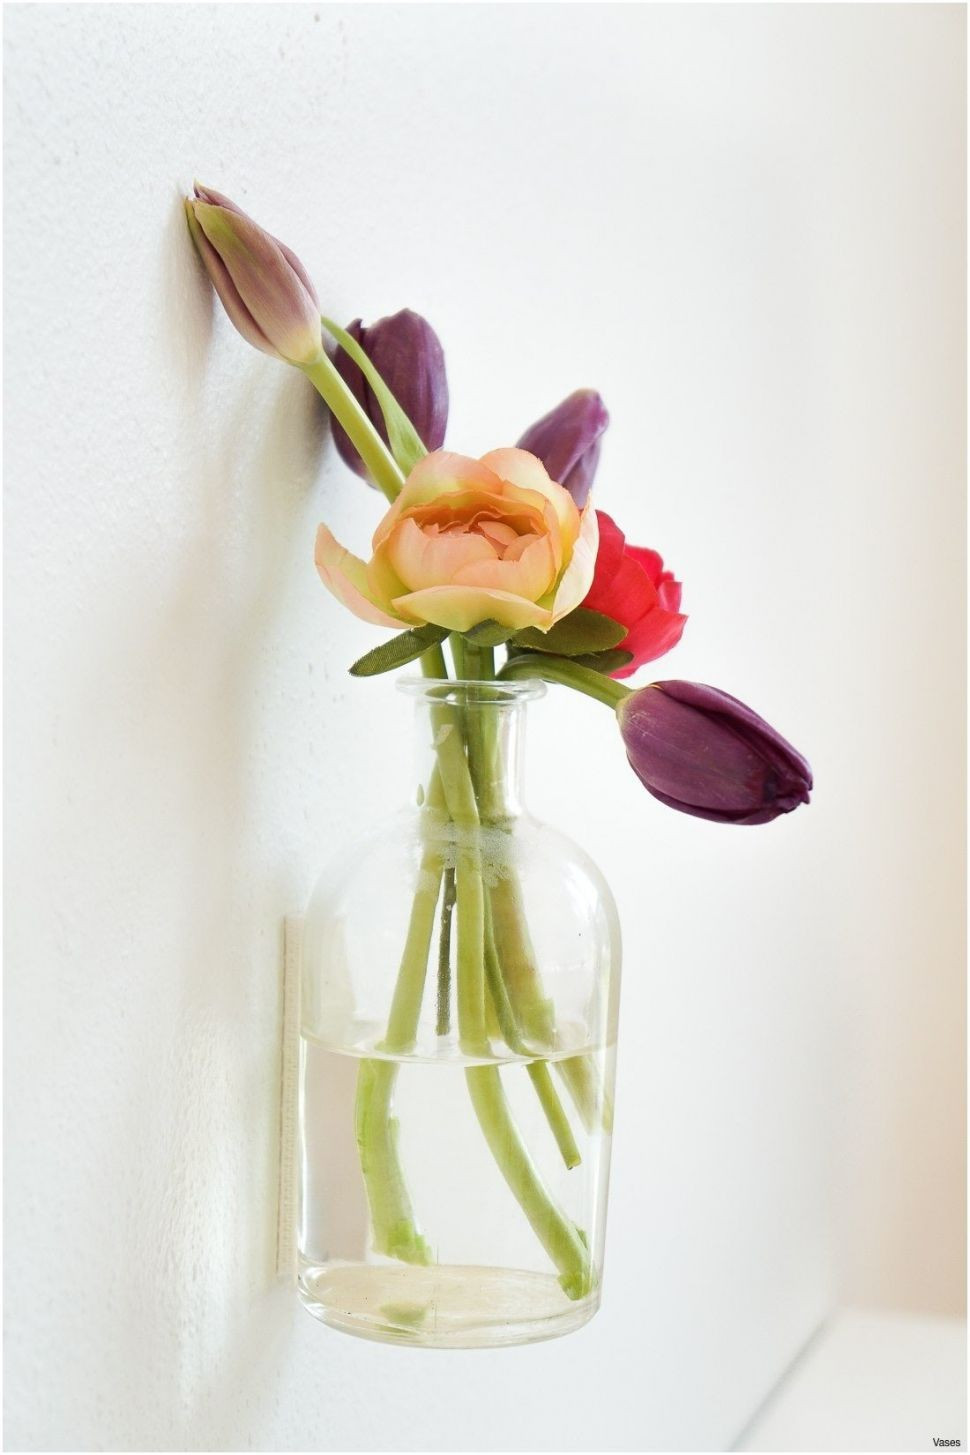 Hanging Flower Vase Of Hanging Flower Vase Free Stock Photo Image Wallpaper Unique Wall Bud within Hanging Flower Vase Free Stock Photo Image Wallpaper Inspirational Wall Bud Vase Pics H Vases Bud